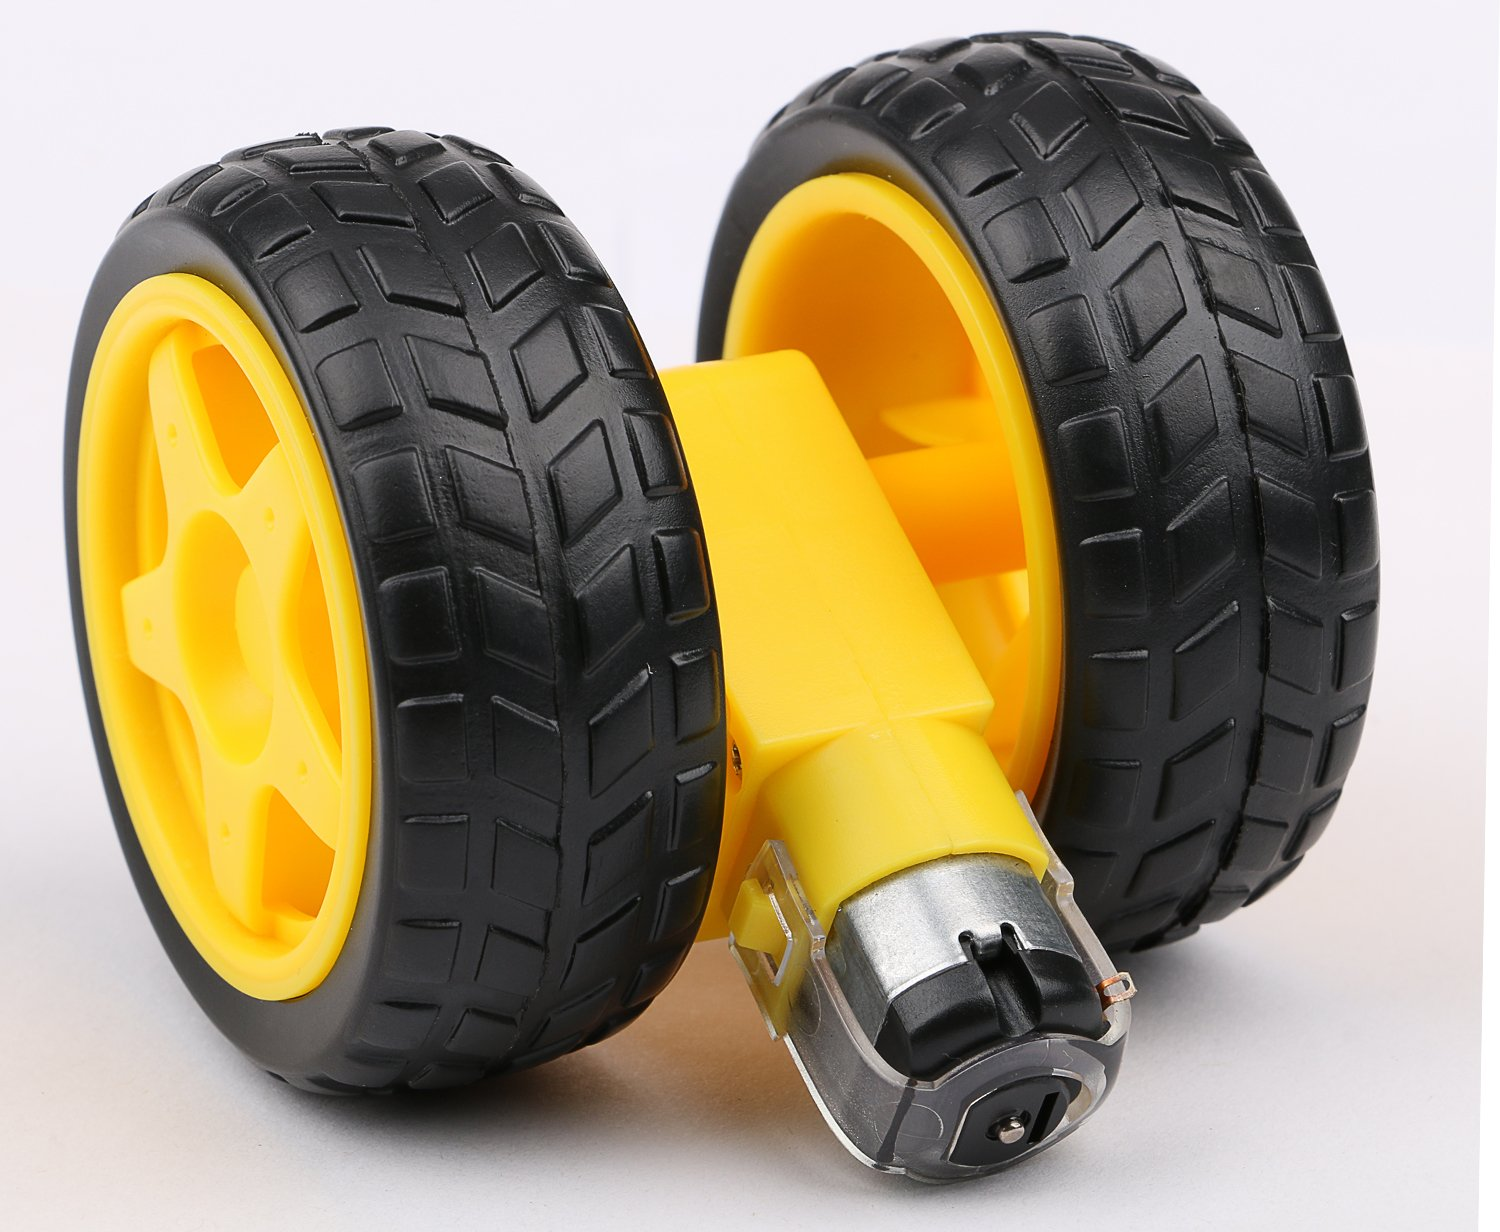 4PCs DC Electric Motor 3-6V Dual Shaft Geared TT Magnetic Gearbox Engine with 4Pcs Plastic Toy Car Tire Wheel, Mini Φ67mm Smart RC Car Robot Tyres Model Gear Parts, Yeeco by Yeeco (Image #6)